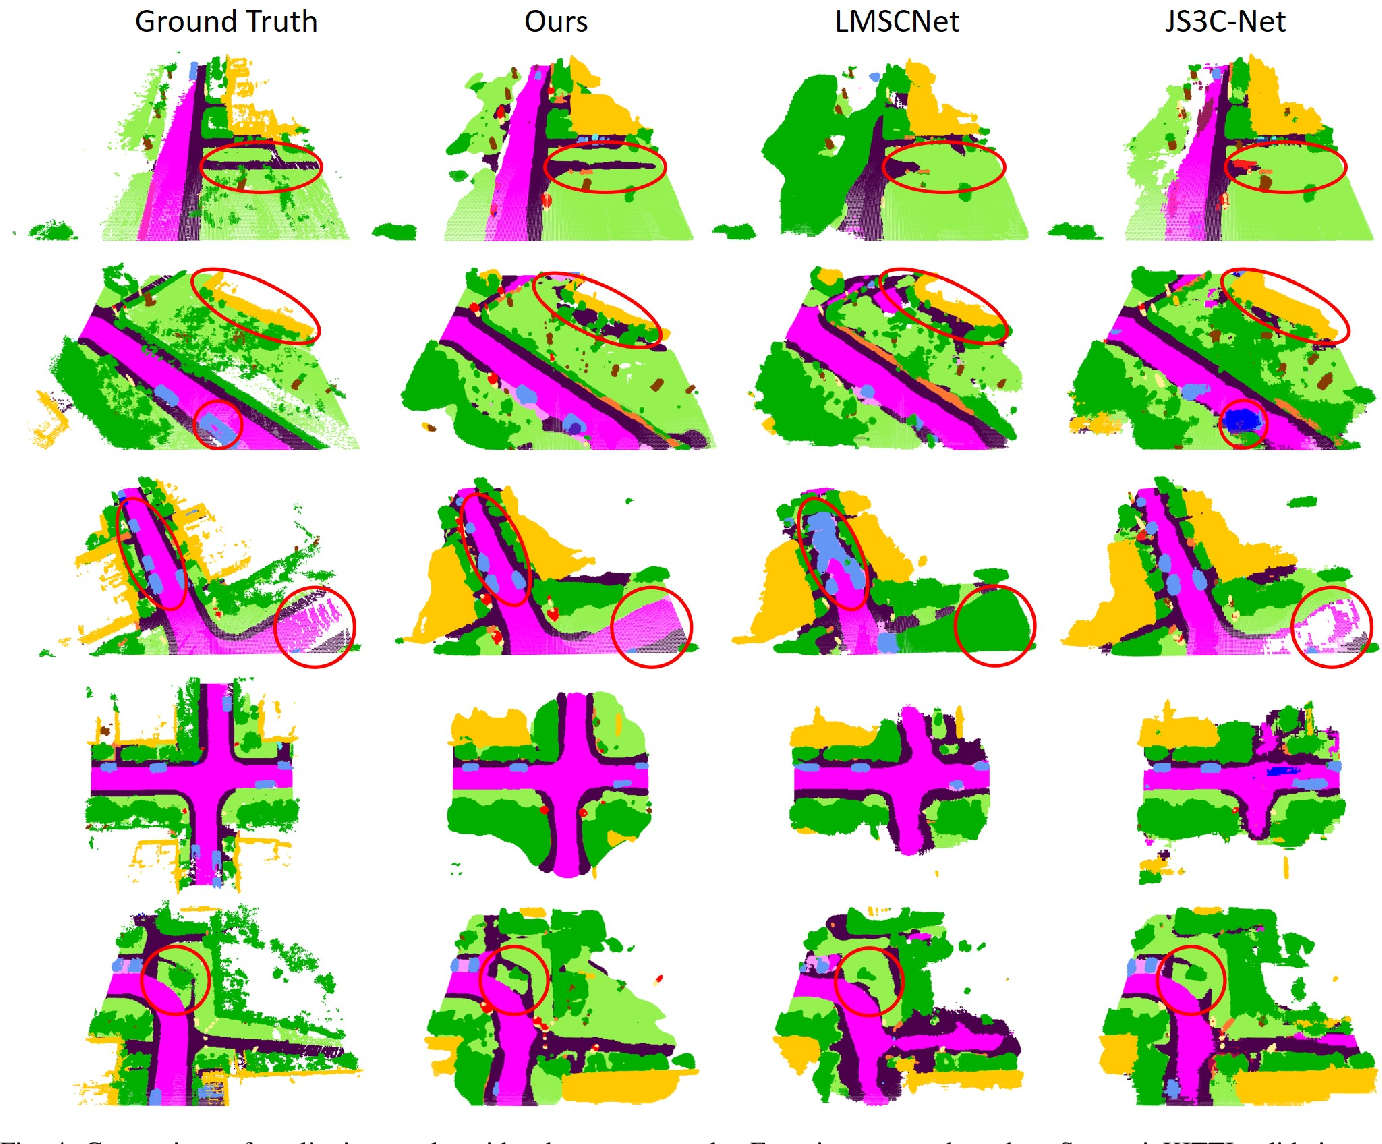 Figure 4 for Semantic Segmentation-assisted Scene Completion for LiDAR Point Clouds